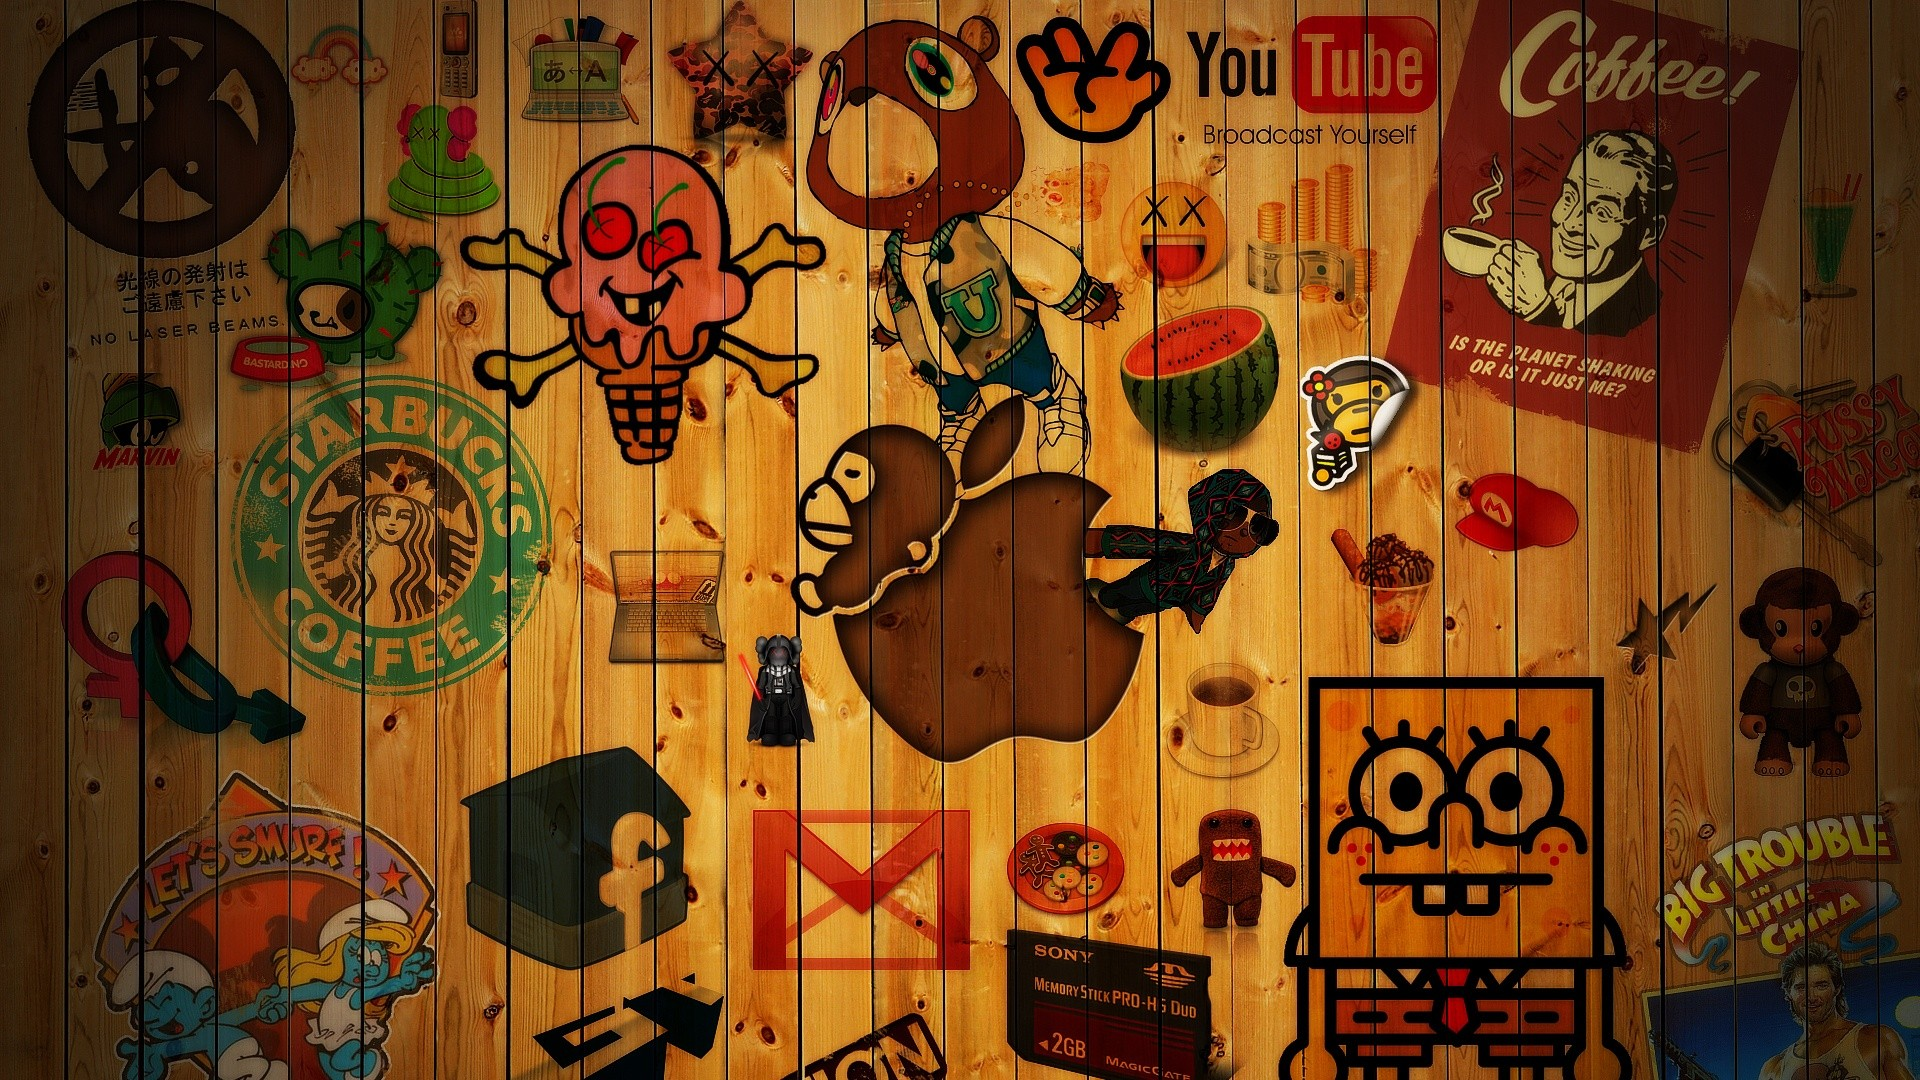 Wallpaper Youtube